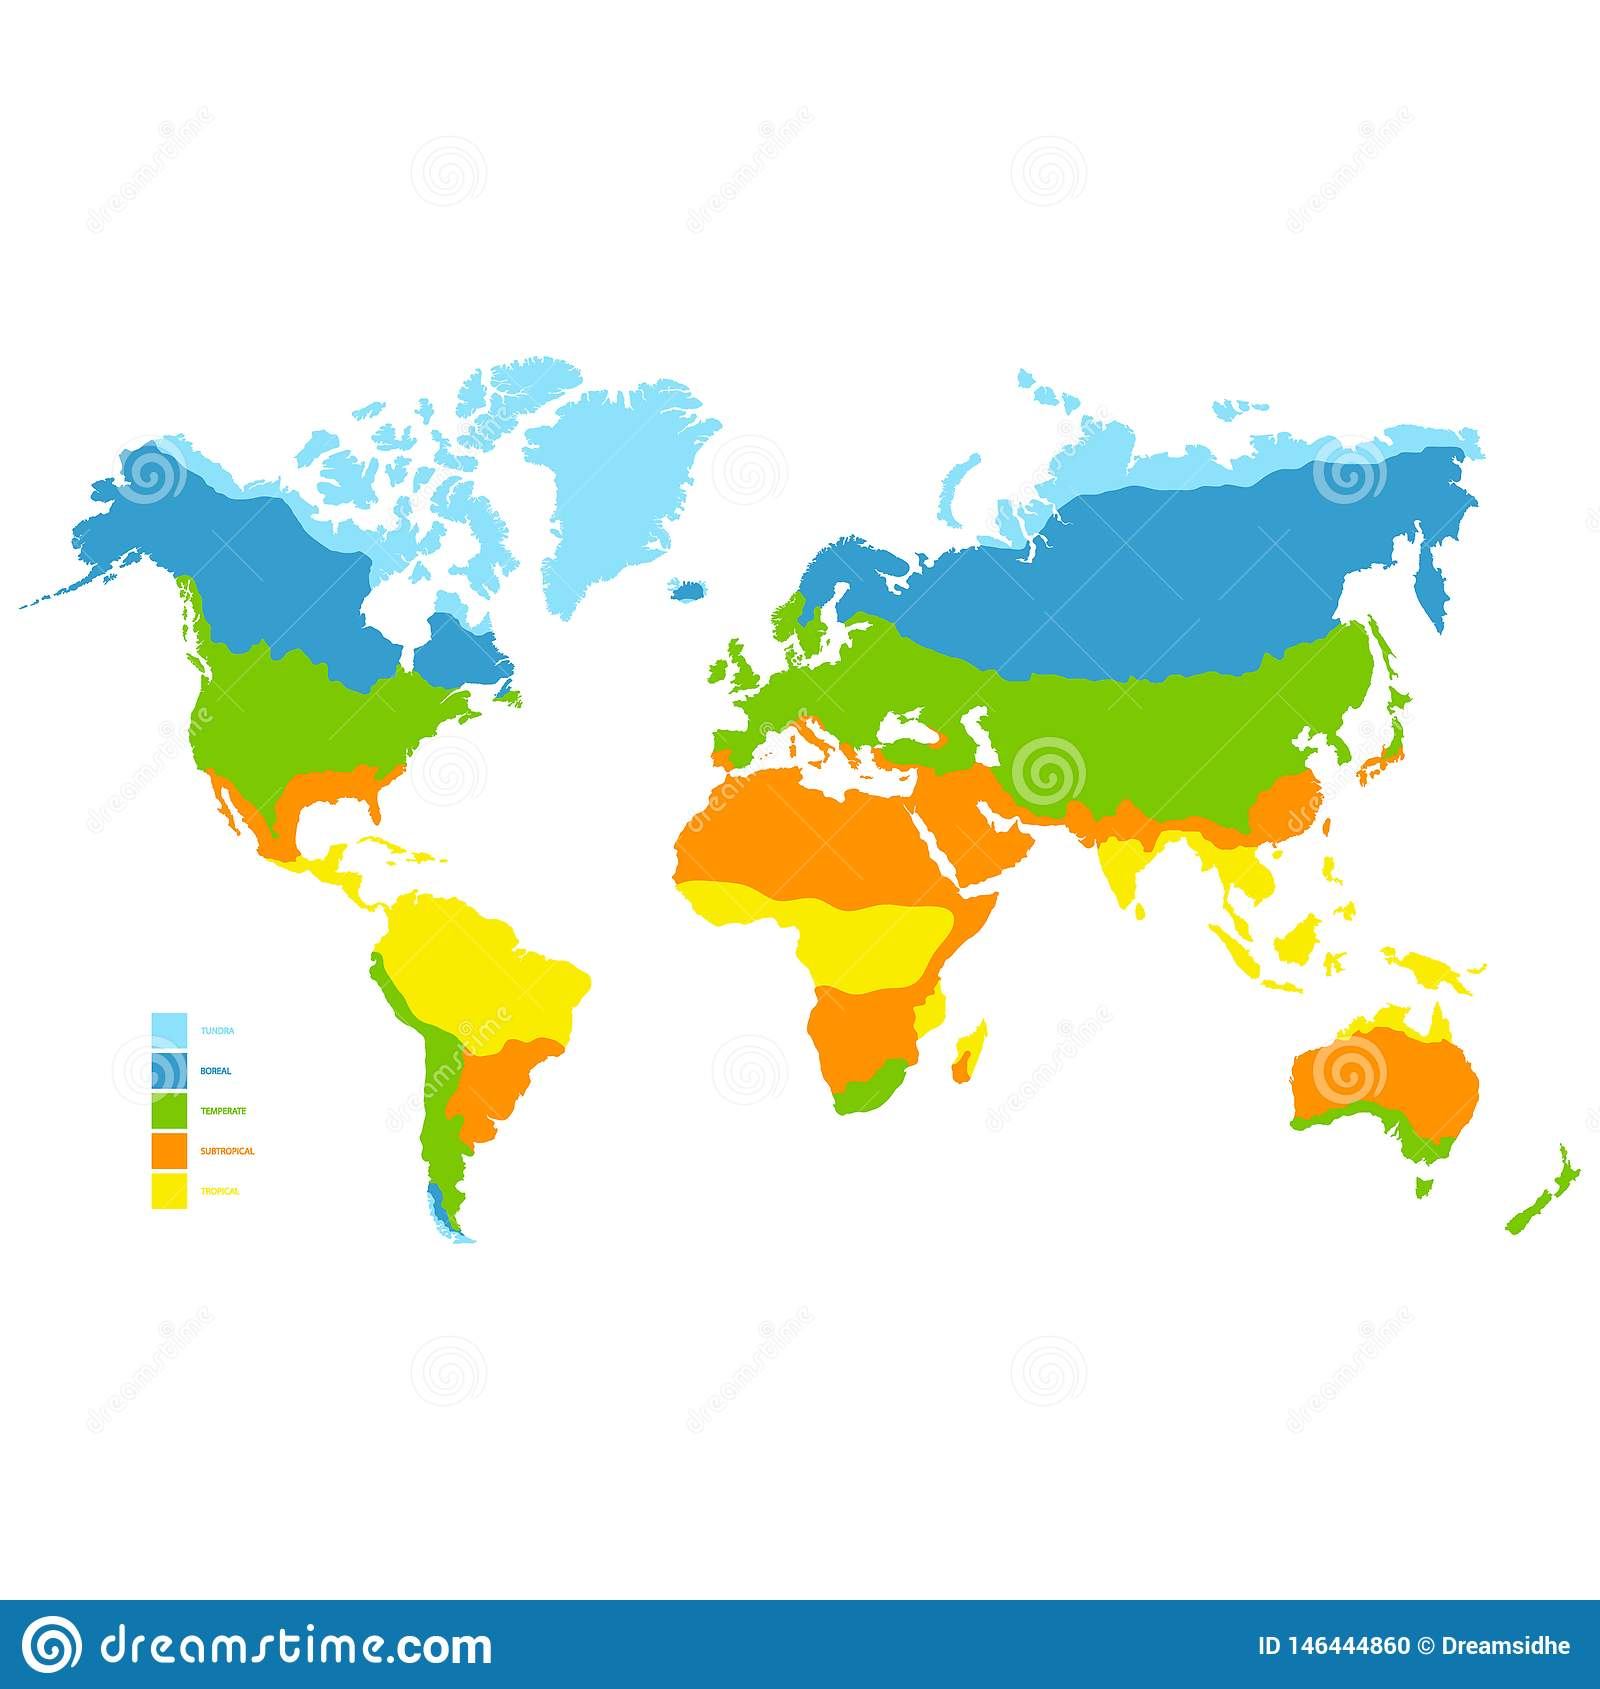 World Map With Climate Zone Stock Vector - Illustration of zone